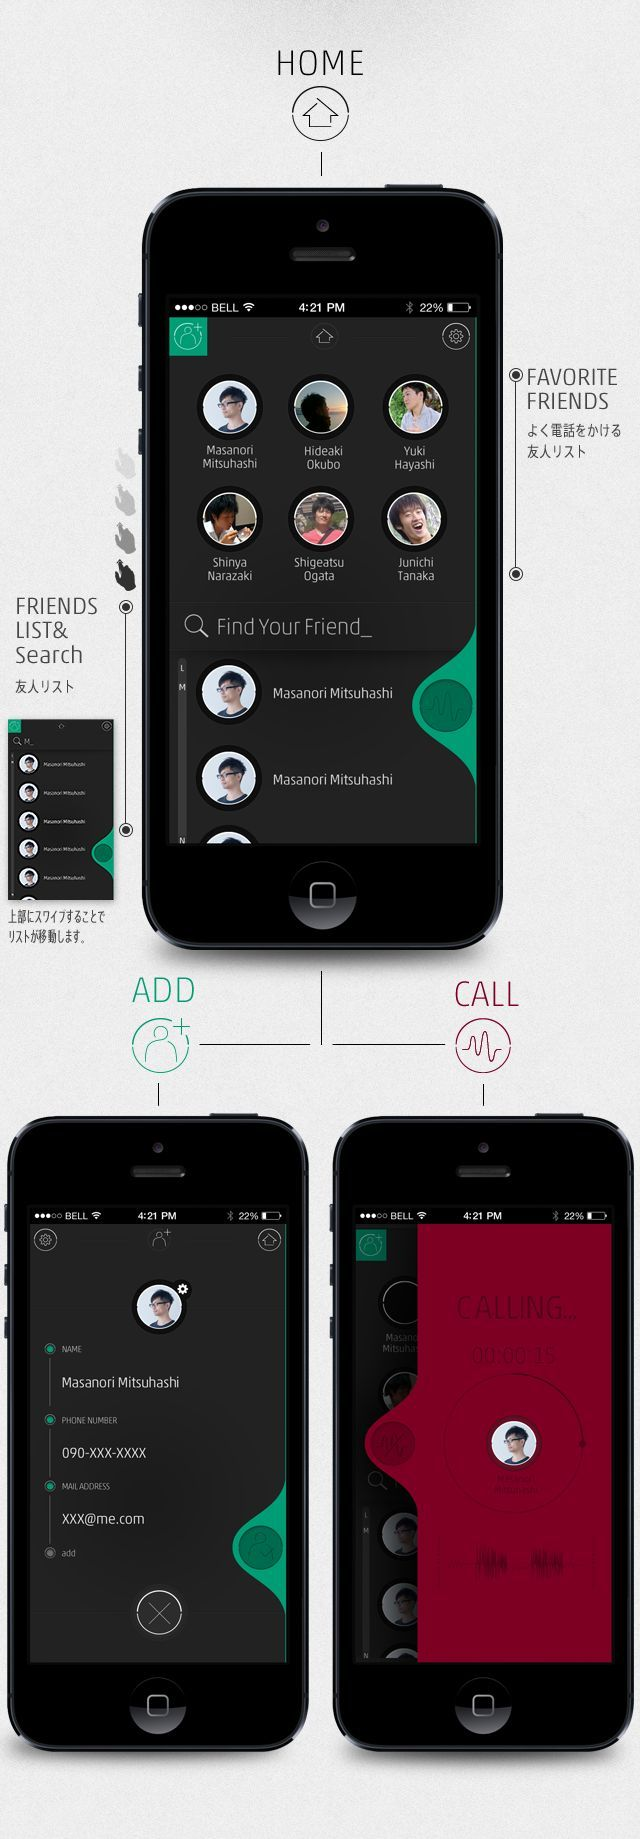 Apple. iPhone. iOS. Next Thing. Custom. Modification. Concept. Drop Calling. Clean. Modern. Fresh. UI UX. Flat Design. Interface. Red & Green. Gestures. Swipe.